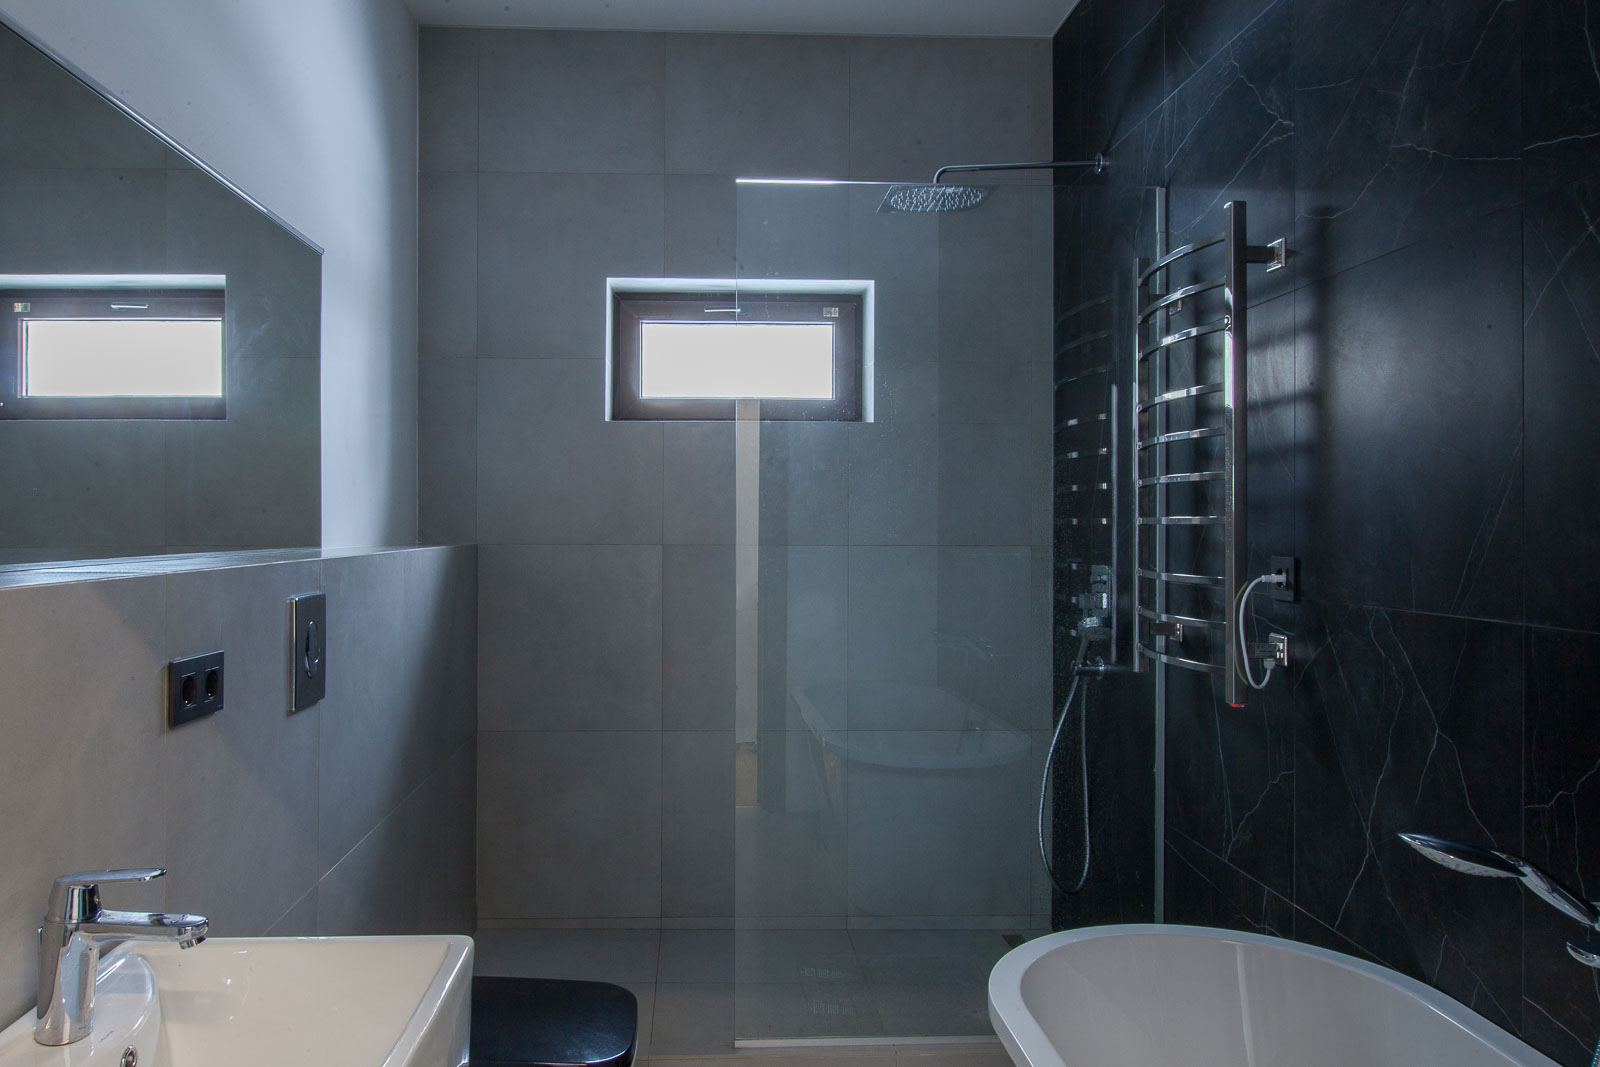 Interior with the window in the shower